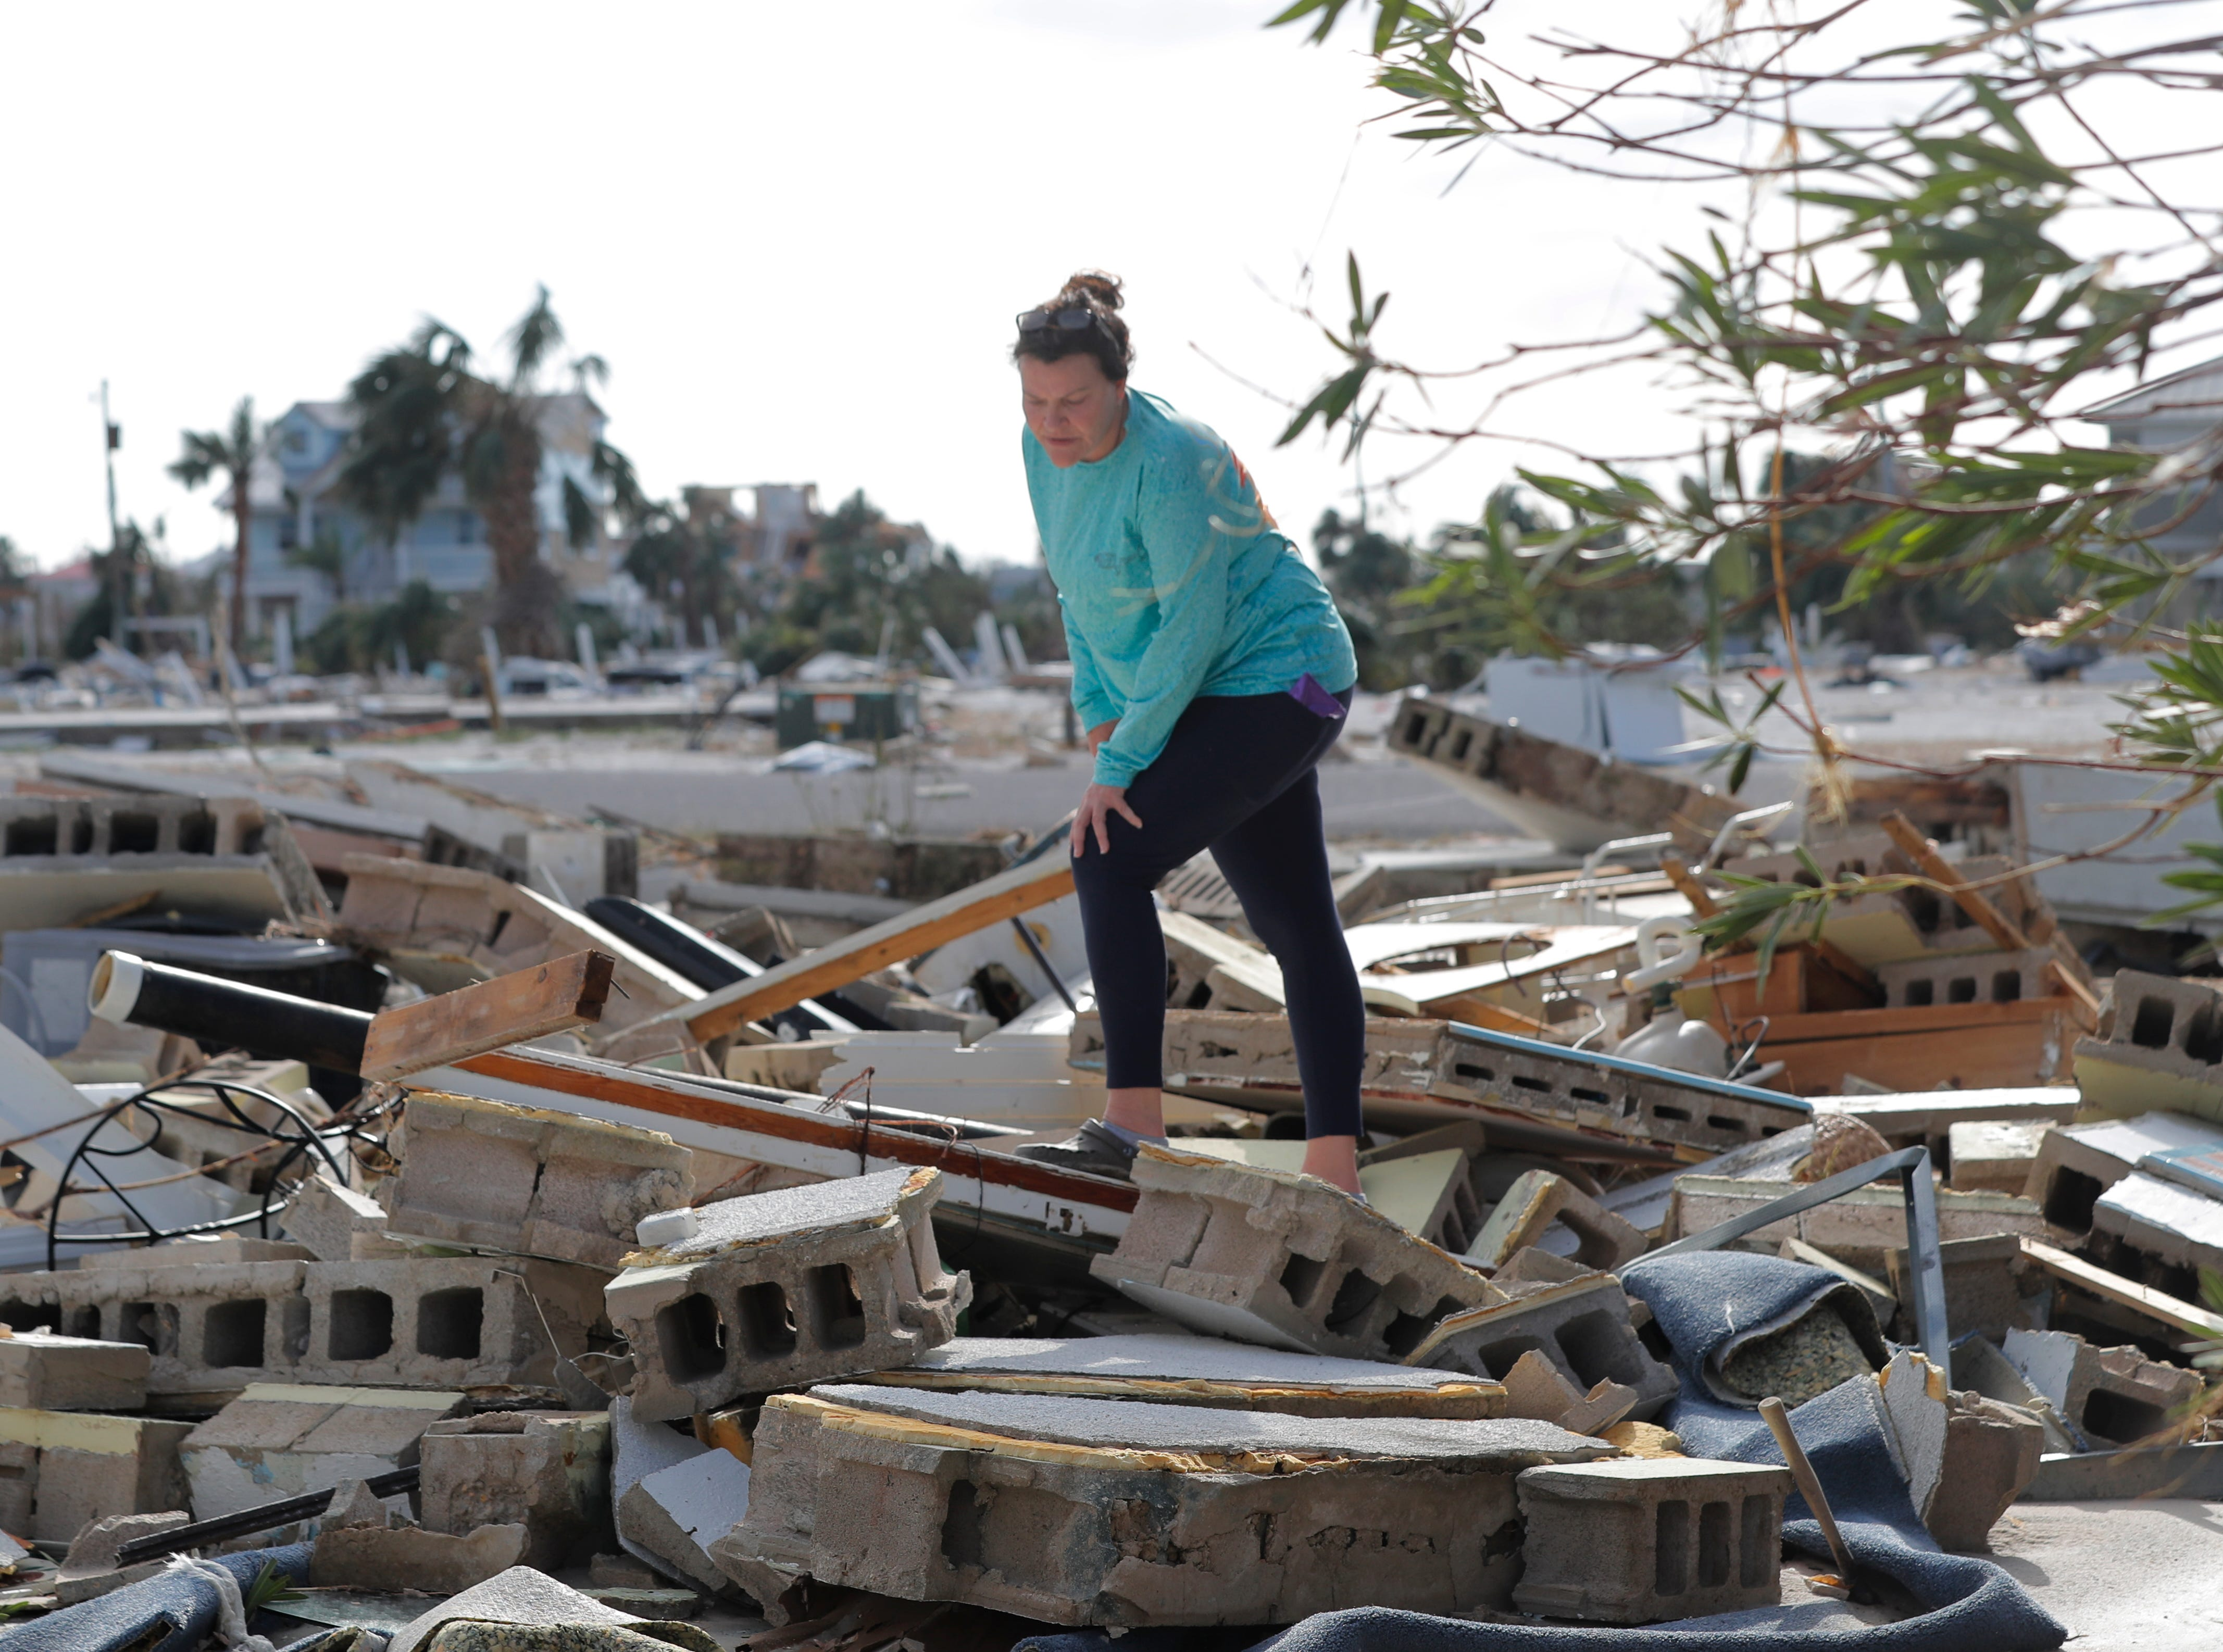 Mishelle McPherson looks her friend Agnes Vicari in the rubble of her home, since she knows she stayed behind in the home during Hurricane Michael, in Mexico Beach, Fla., Thursday, Oct. 11, 2018. (AP Photo/Gerald Herbert)